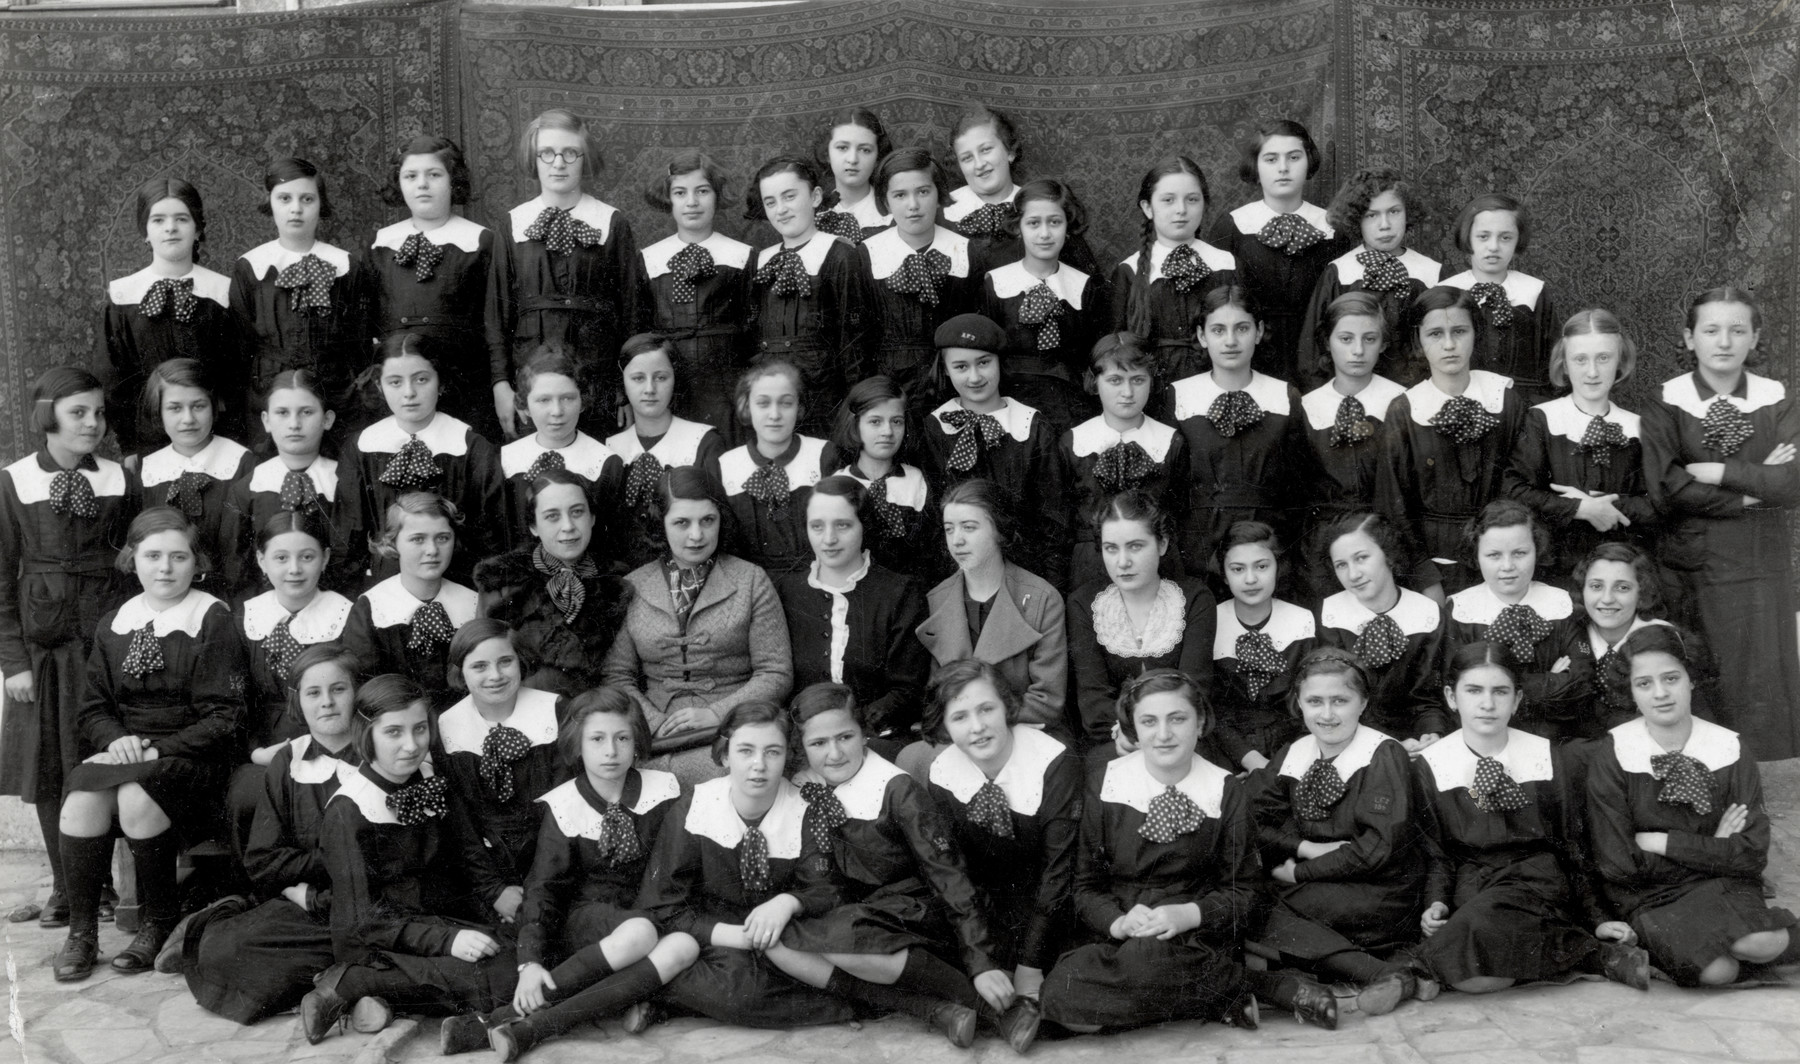 A group photograph of children from the Ultea Domna School, directed by Balan.   The group of children includes Thea Kollenberg (pictured second row from the bottom on the far right).